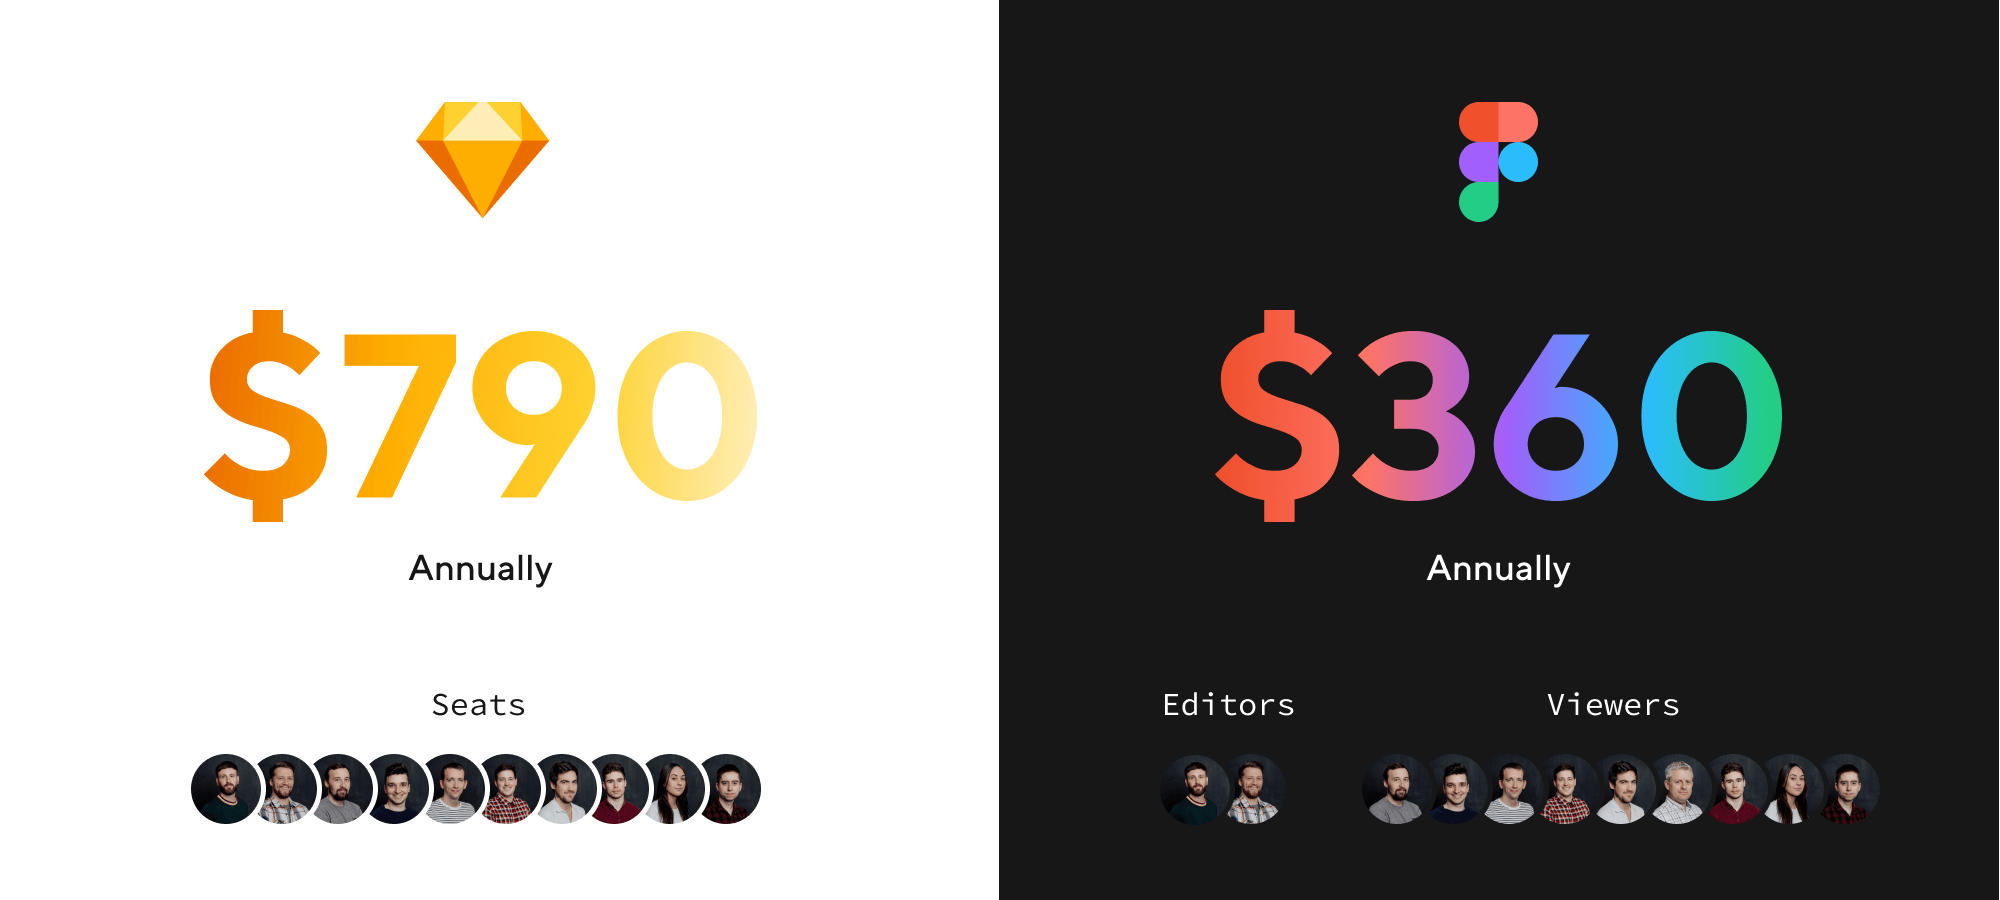 Costs for Figma vs Sketch for an agency of 10